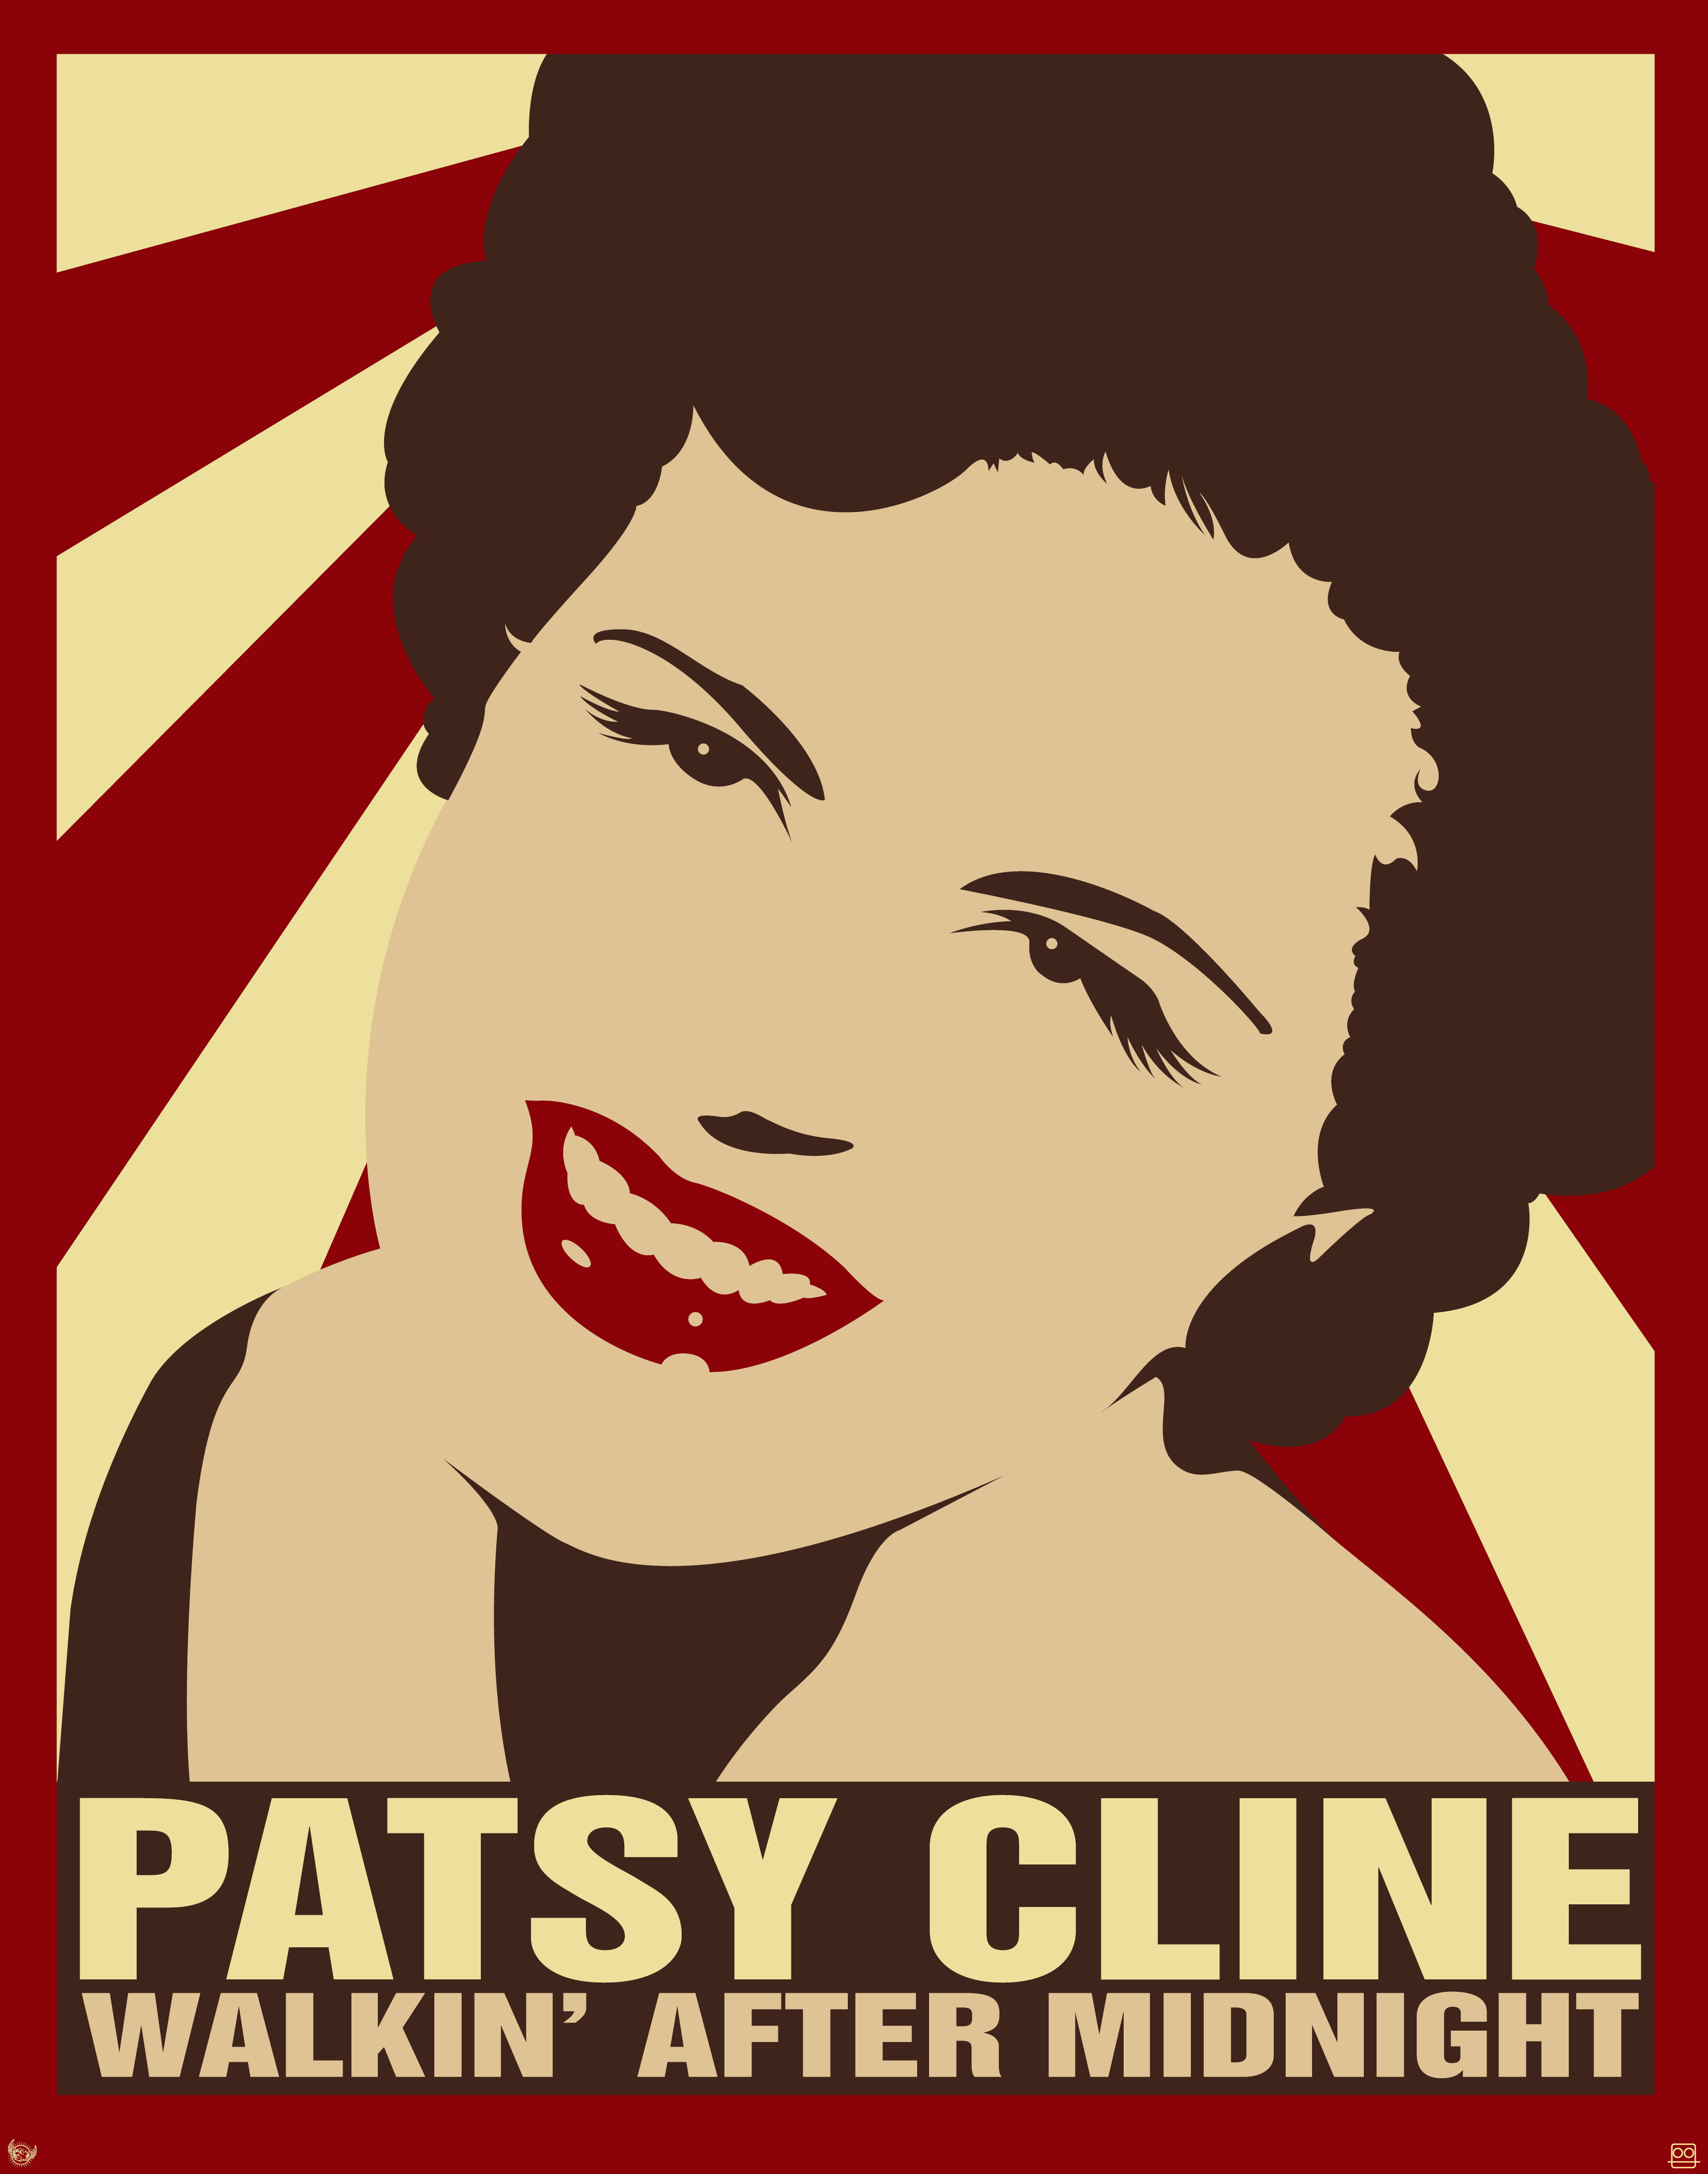 Patsy Cline by TravisSmall 3300x4200